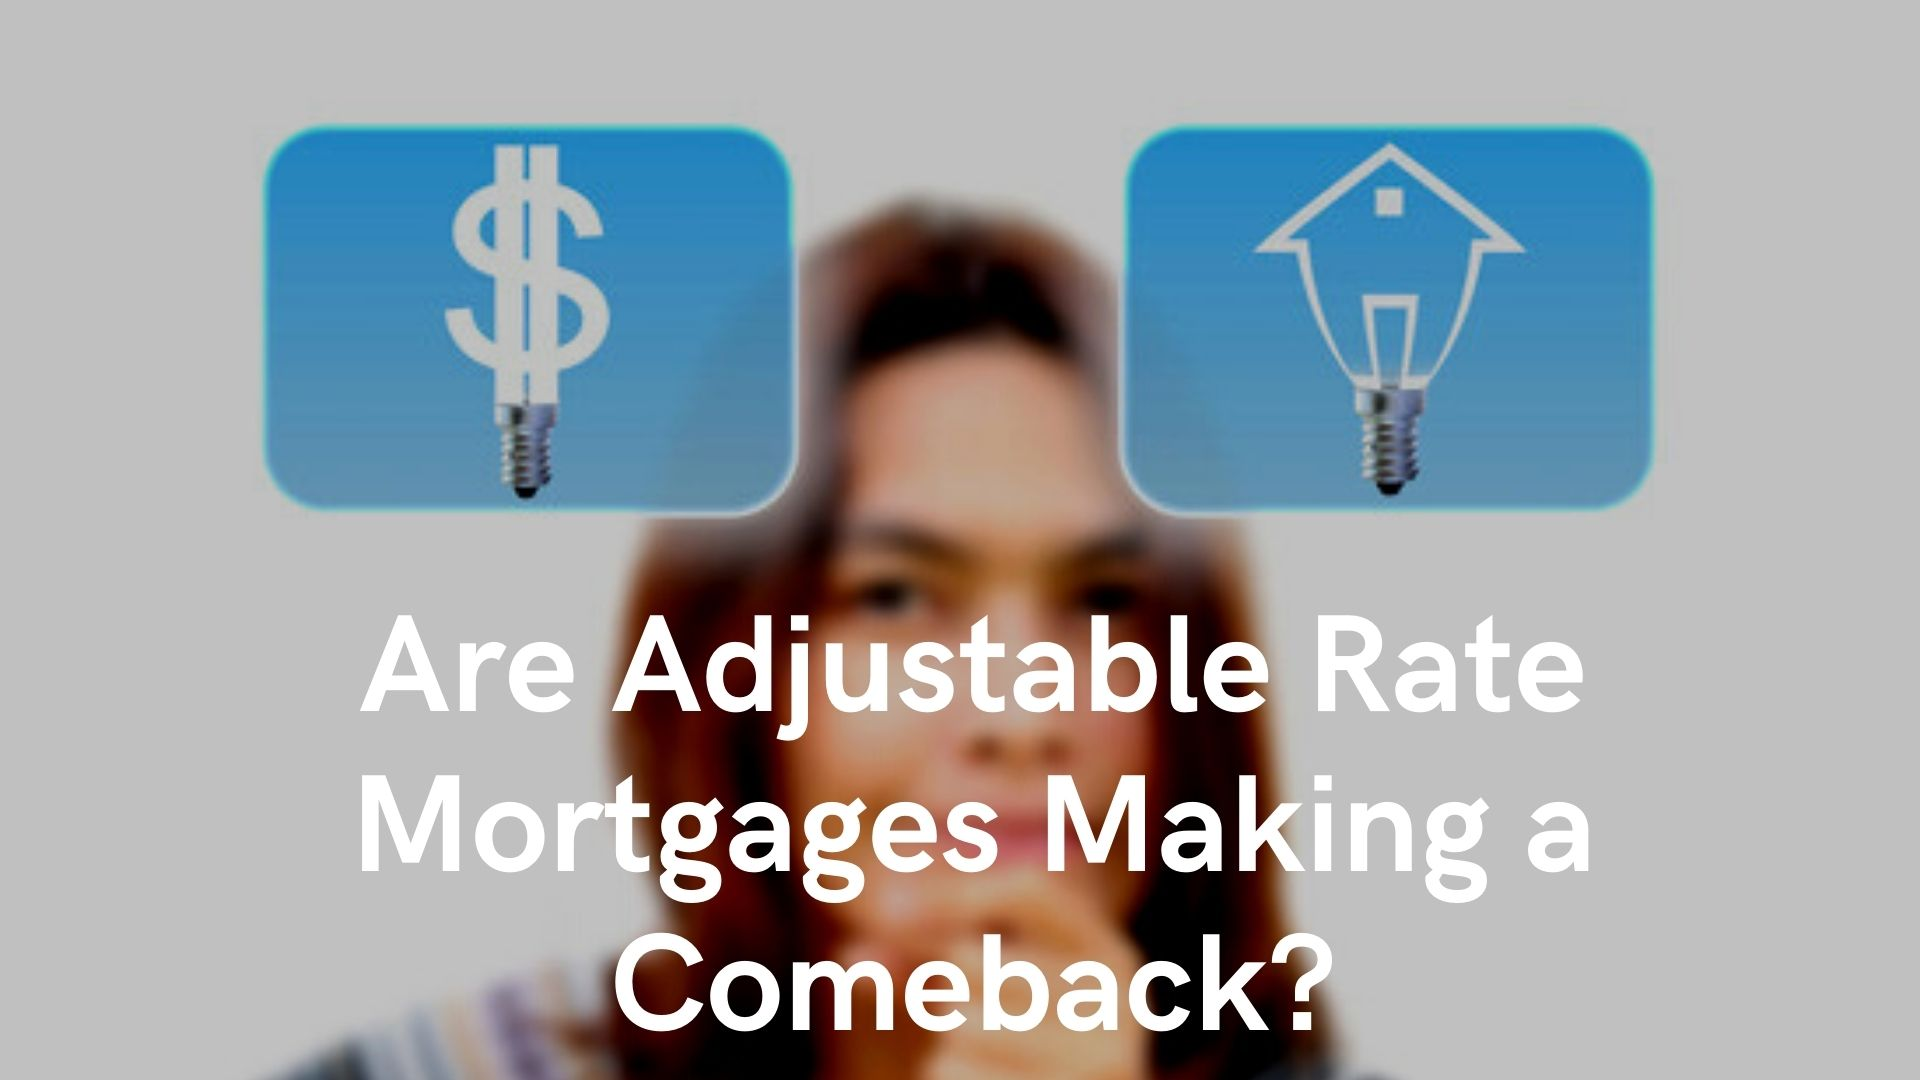 Are Adjustable Rate Mortgages Making a Comeback?